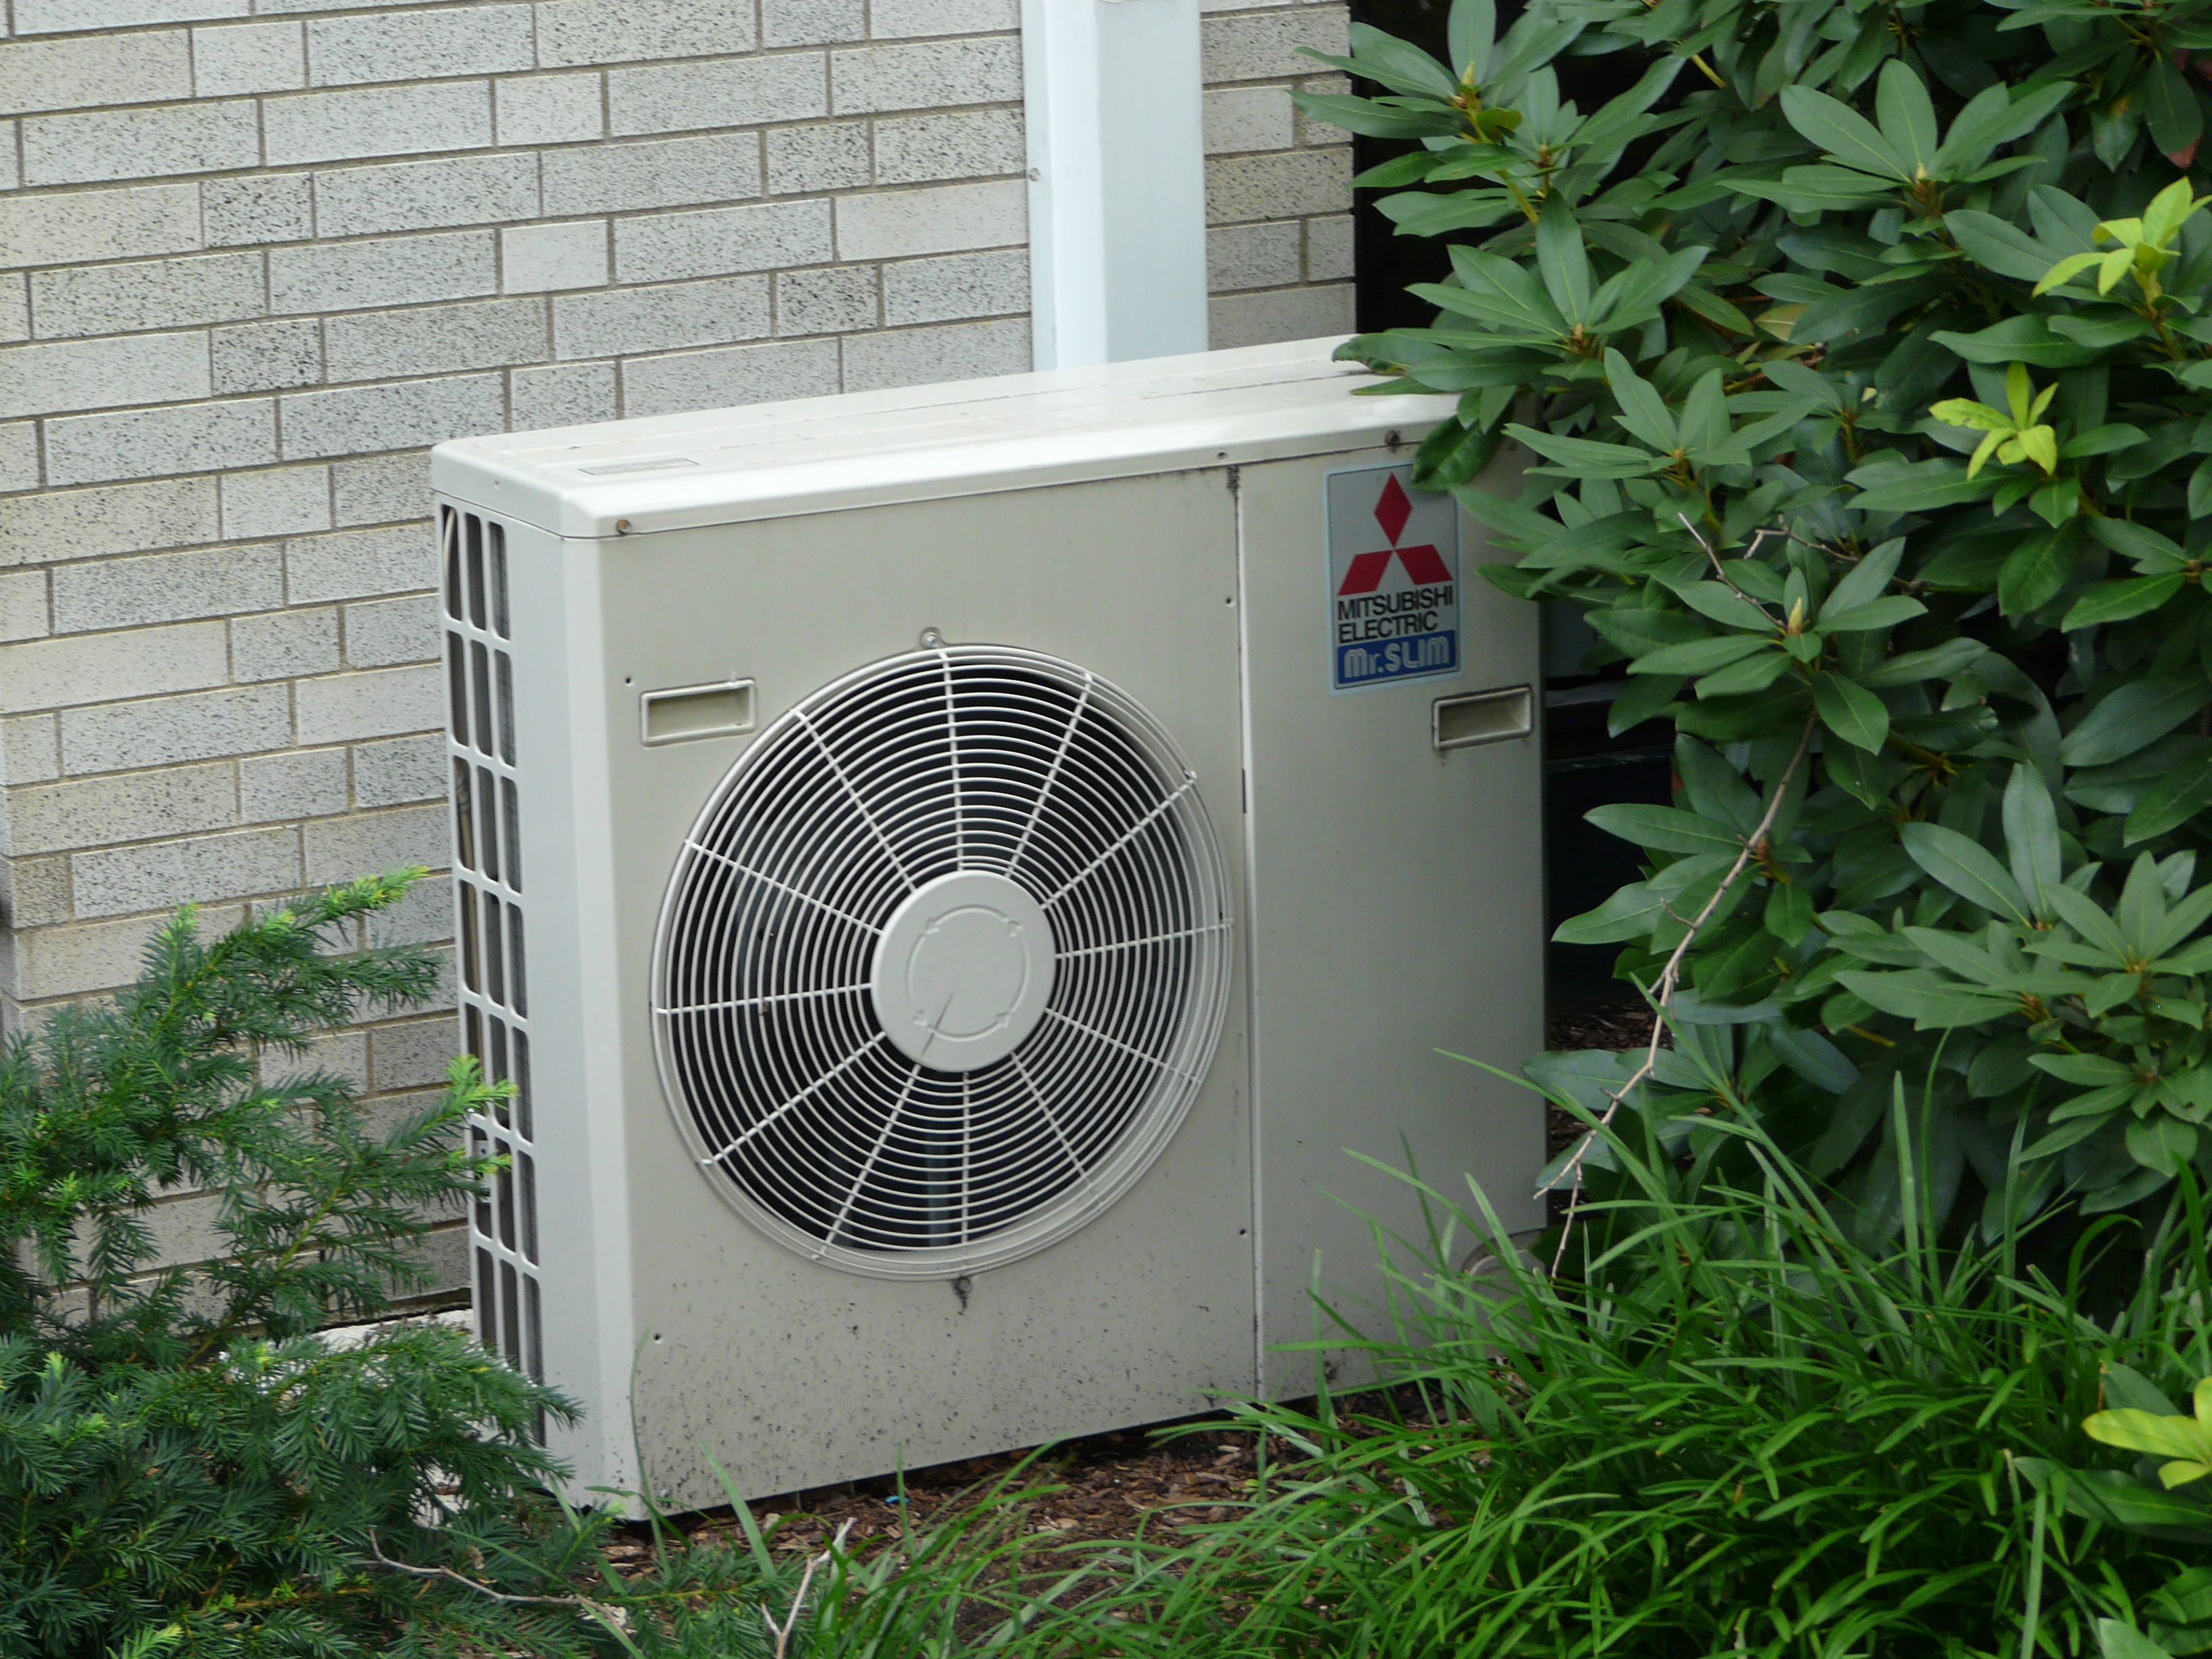 northeastern-university-air-conditioner.jpg